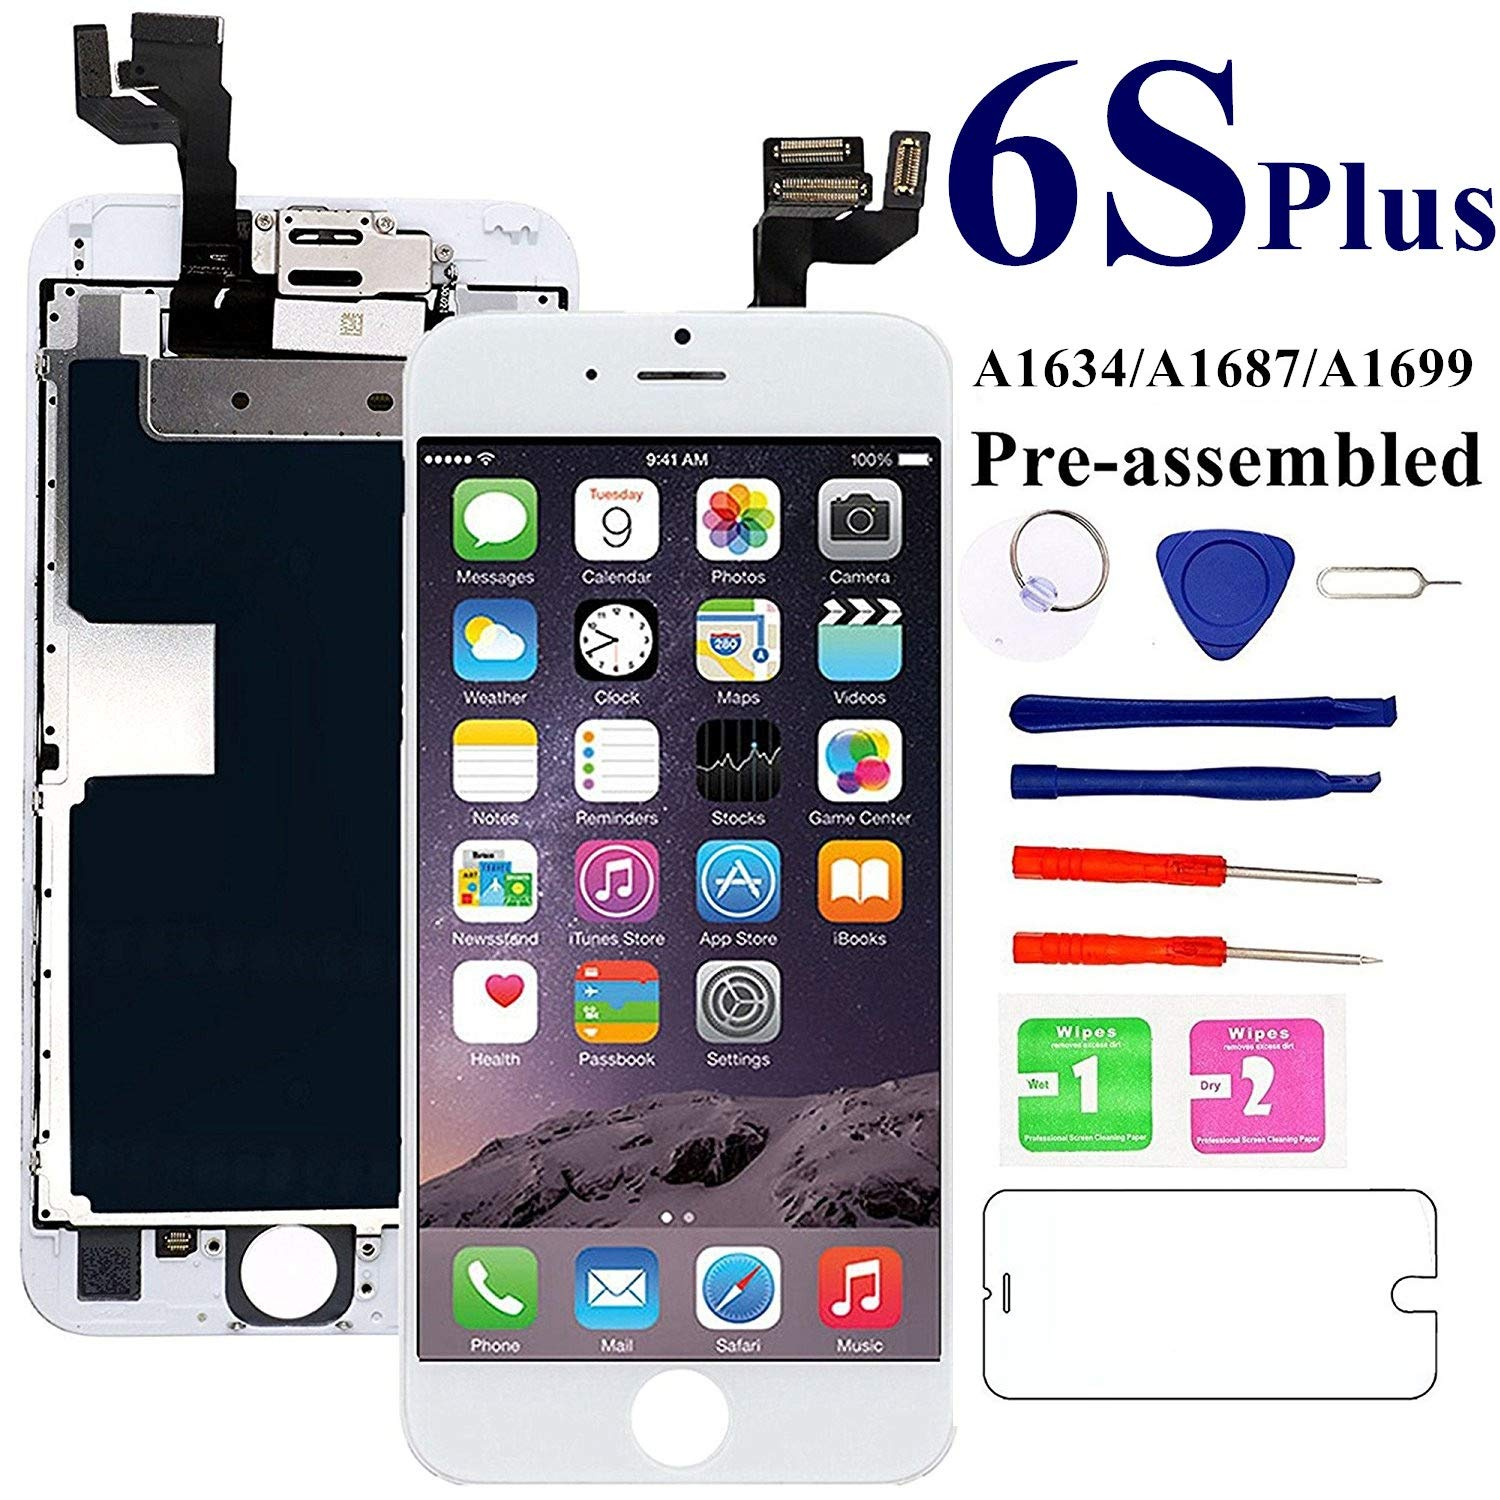 for iPhone 6S Plus Screen Replacement 5.5 inch- White, with Front Camera, Earspeaker - MAFIX Full Assembly LCD Display Digitizer 3D Touch Screen Kit with Repair Tools and Glass Protector by Mafix